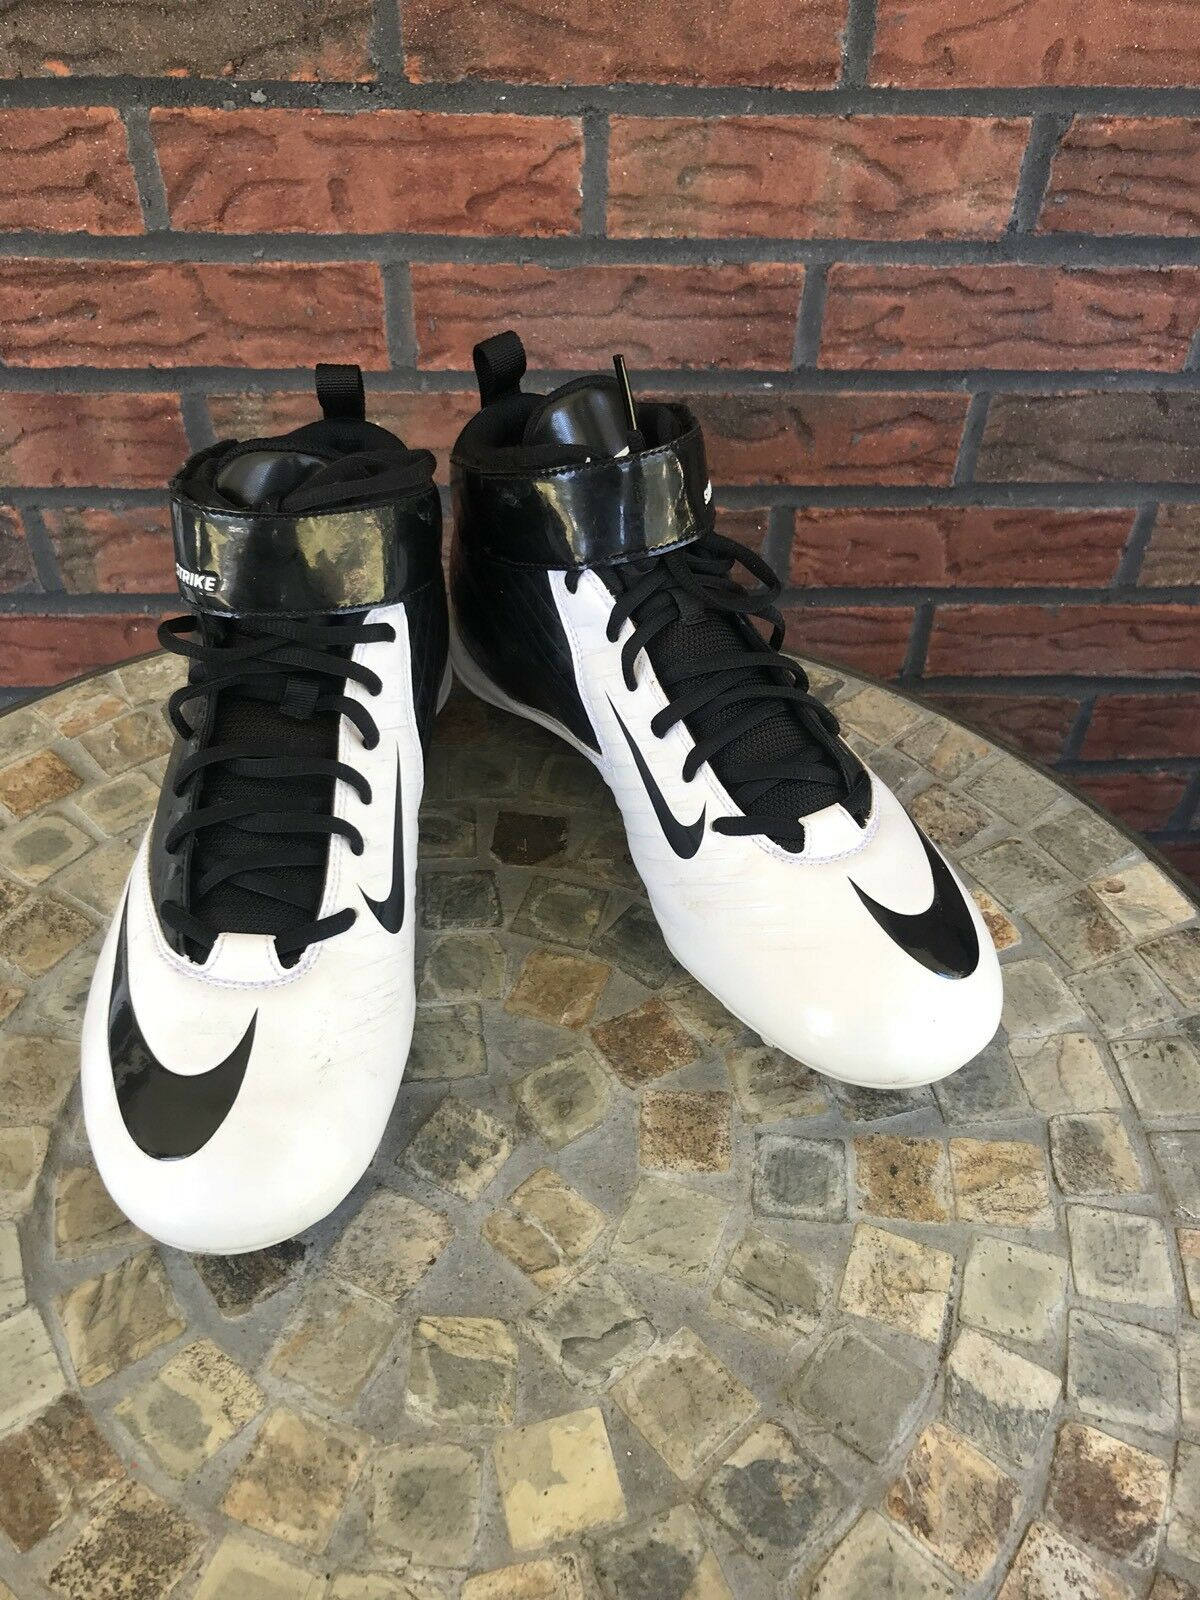 Nike Super Bad Strike D Football Cleats Size 11 White Black Leather Shoes